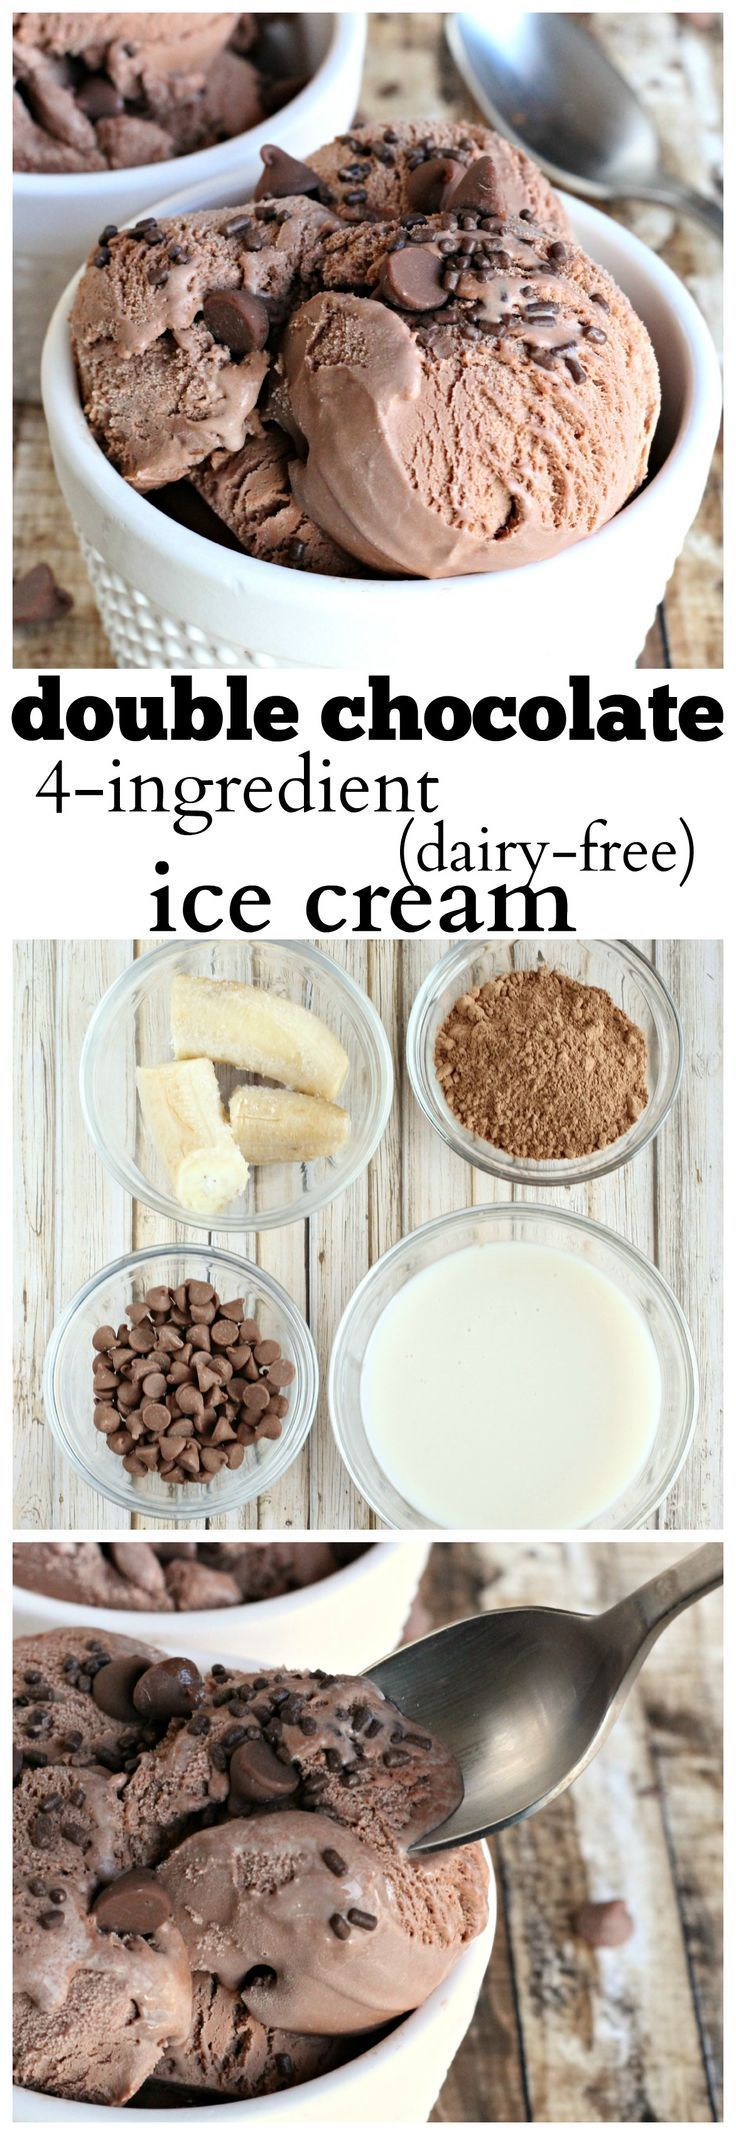 Double Chocolate ice cream, made dairy free with only 4 ingredients. (scheduled via http://www.tailwindapp.com?utm_source=pinterest&utm_medium=twpin&utm_content=post32302842&utm_campaign=scheduler_attribution)